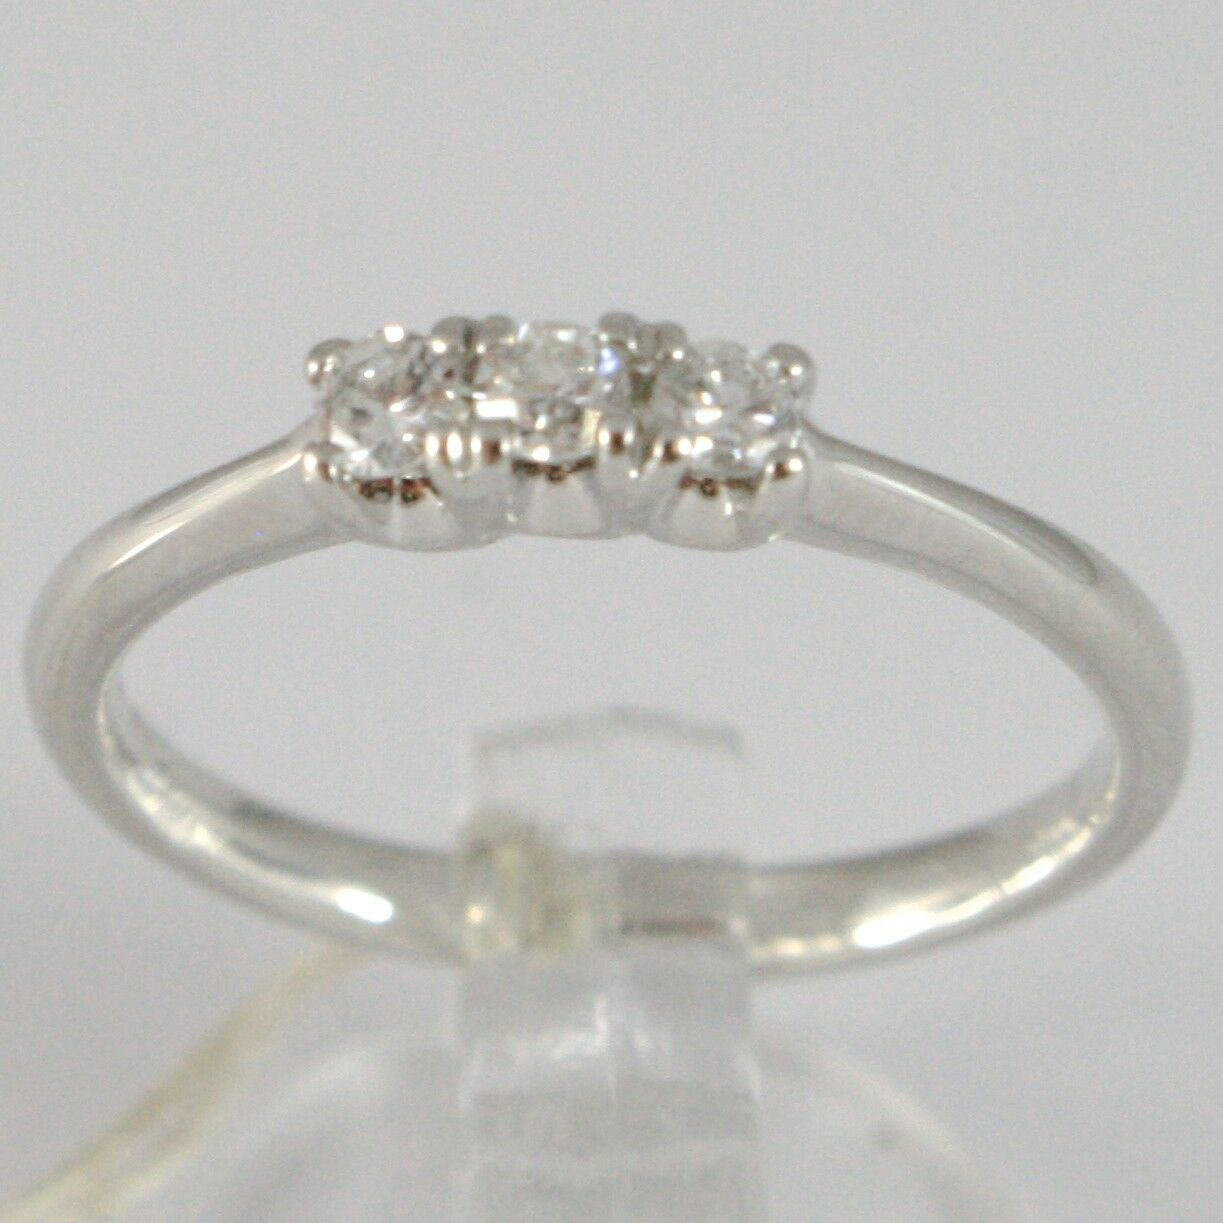 White Gold Ring 750 18K, Trilogy 3 Diamonds Carat Total 0.16, Shank Rounded